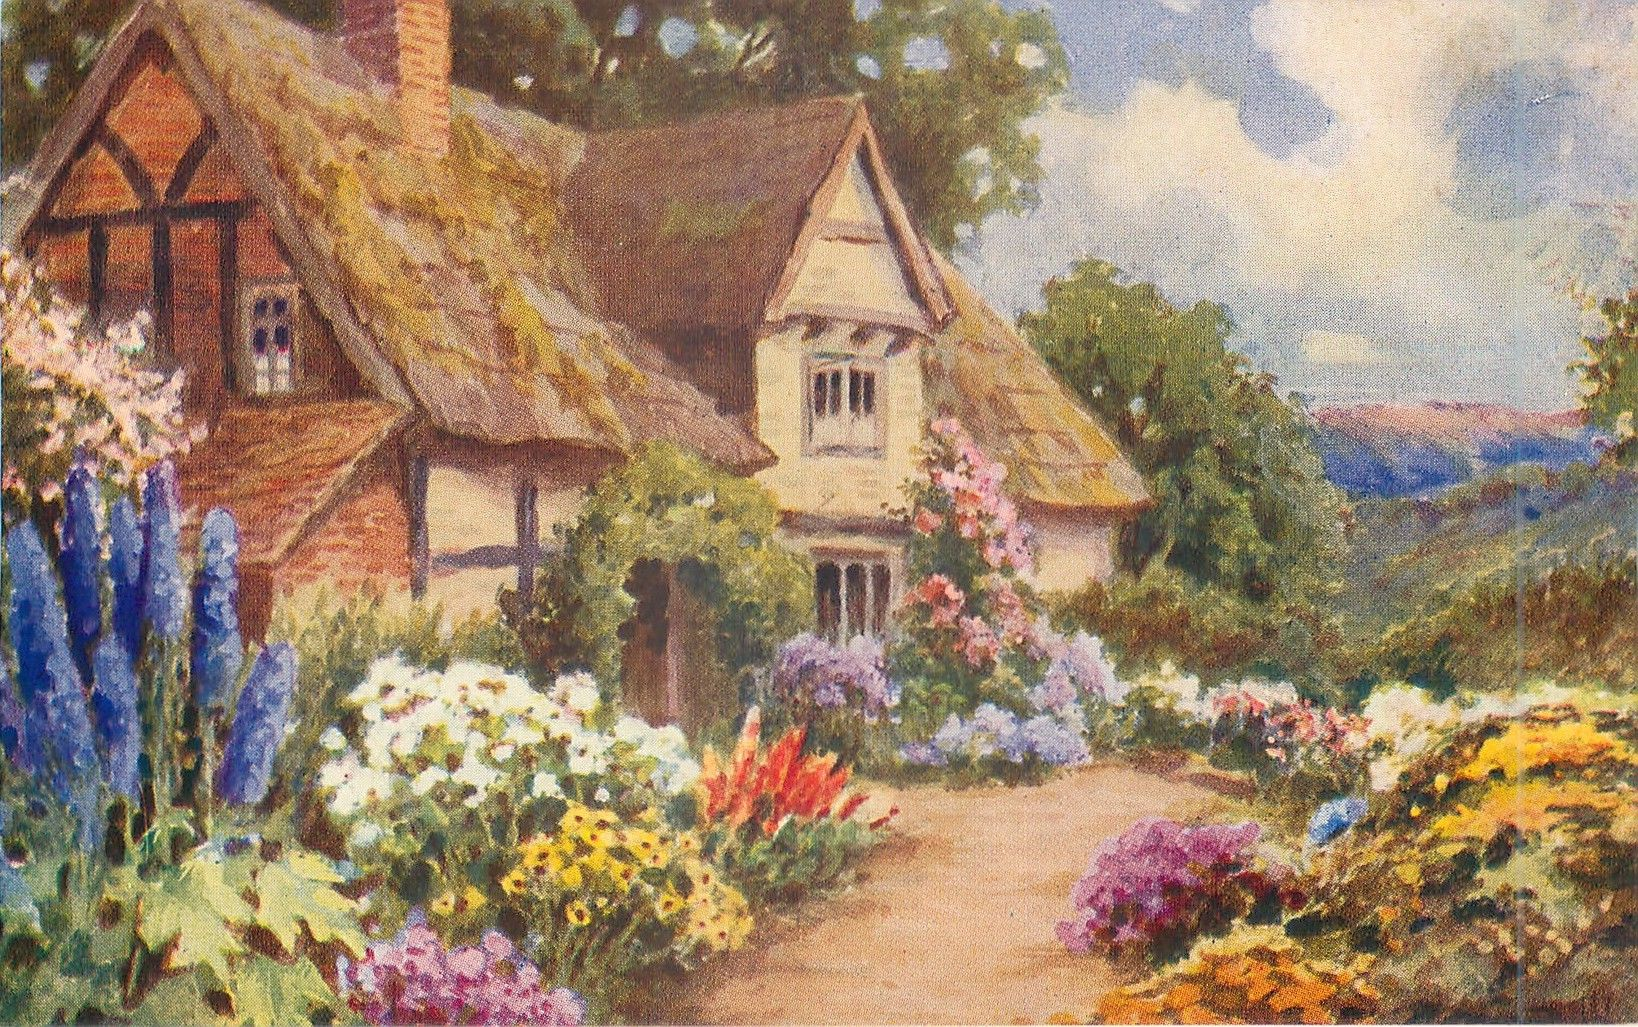 garden in front of thatched cottage | nghệ thuật | Pinterest | Paintings